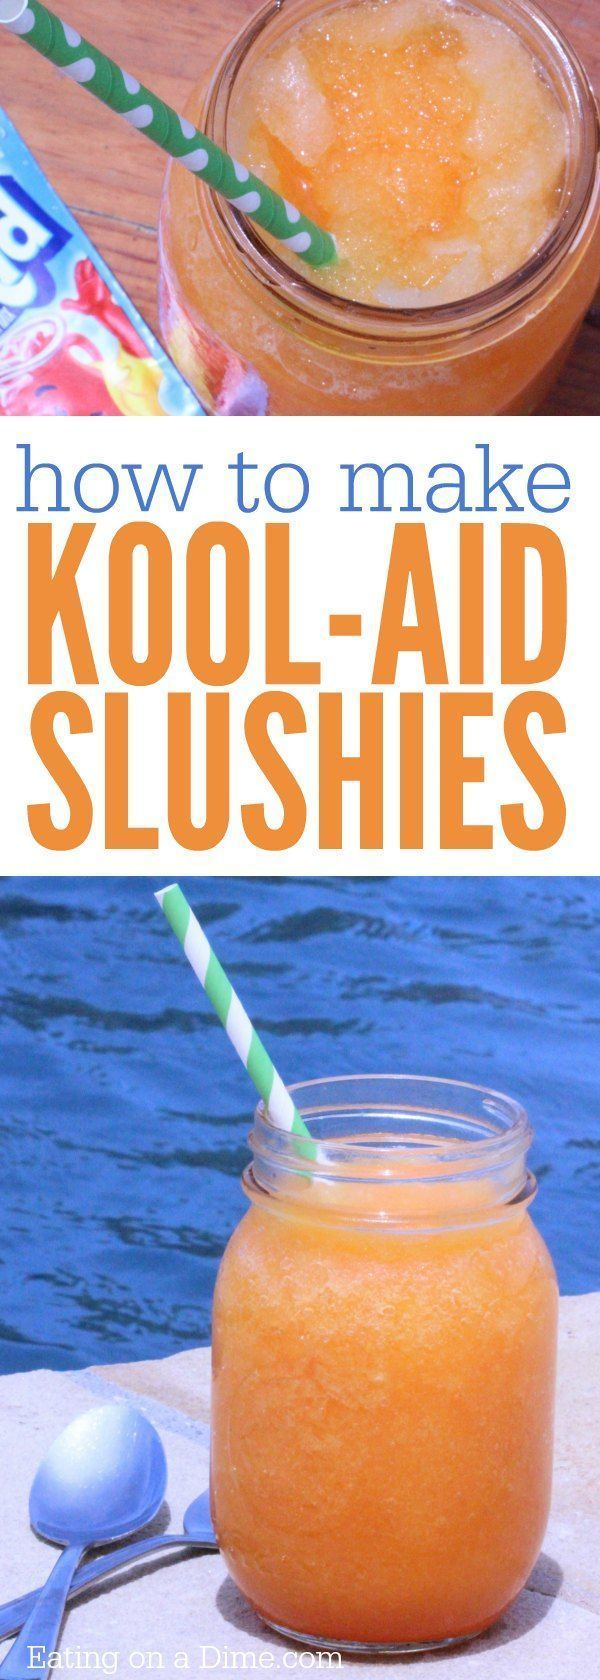 How to make a Slushie with Kool Aid mix. These kool aid slushies are fun for kids in the summer. This homemade slurpee recipe is easy to make.